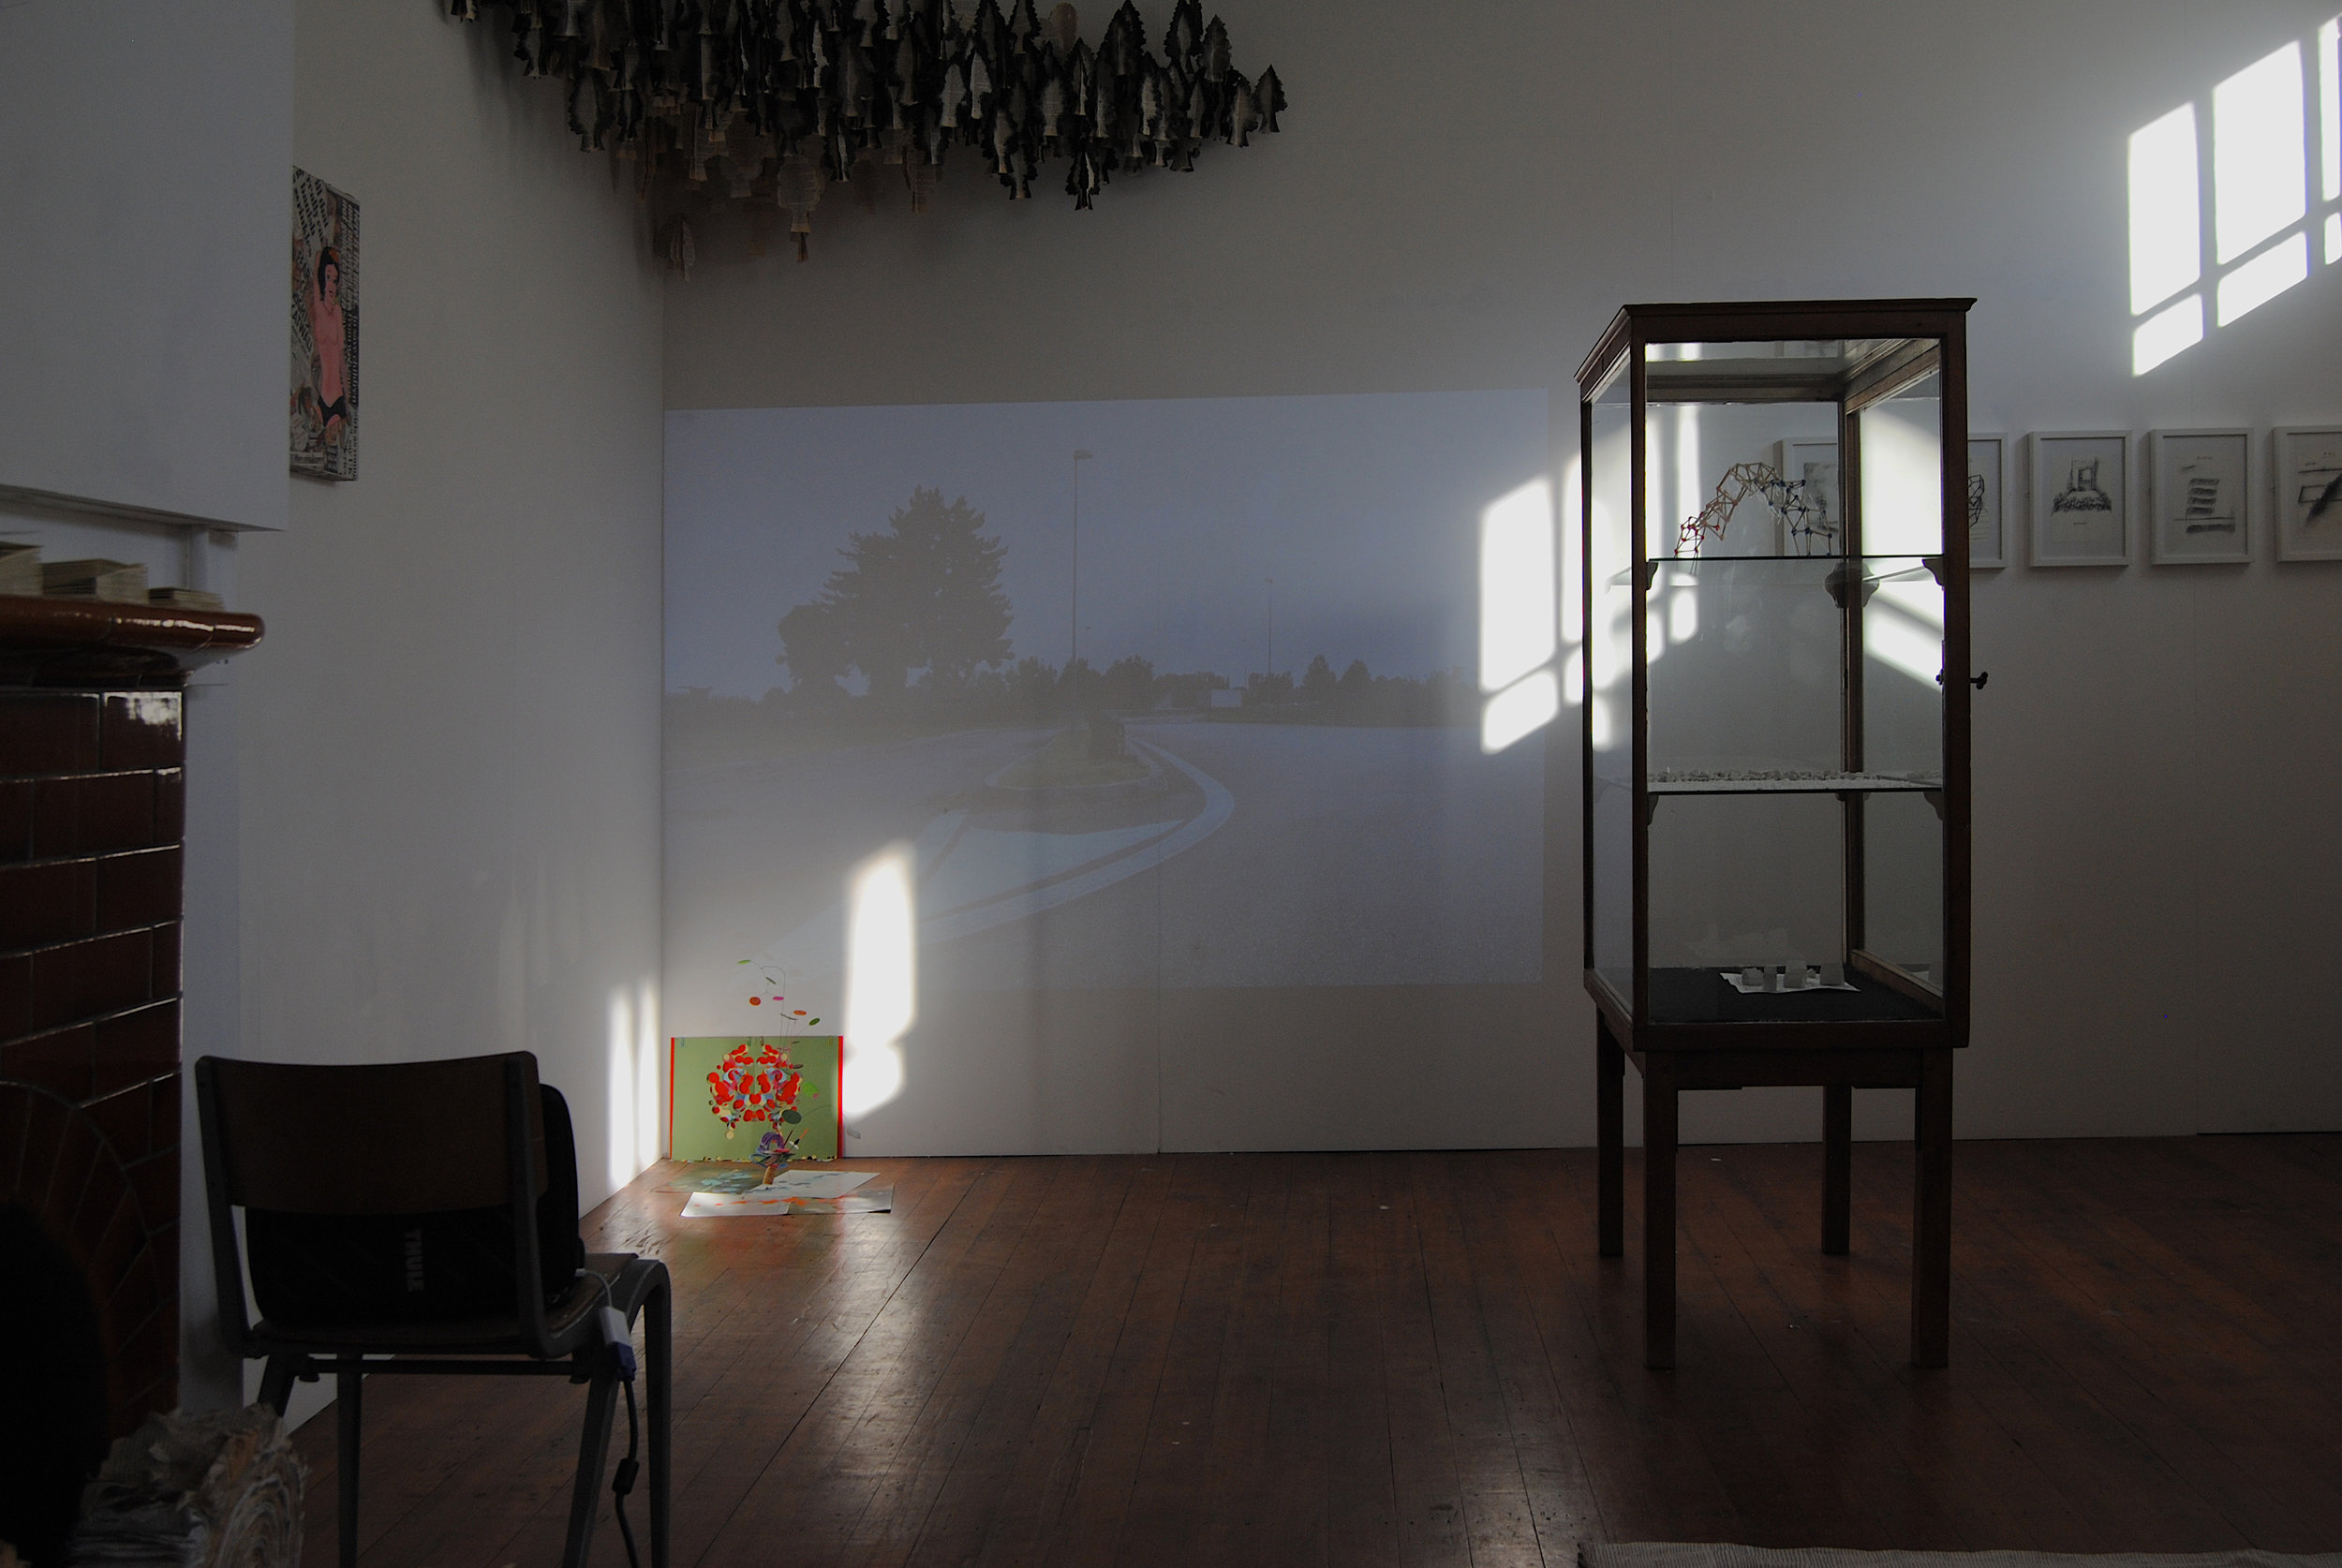 INHOSPITABLE | Liverpool Biennial | October 2012